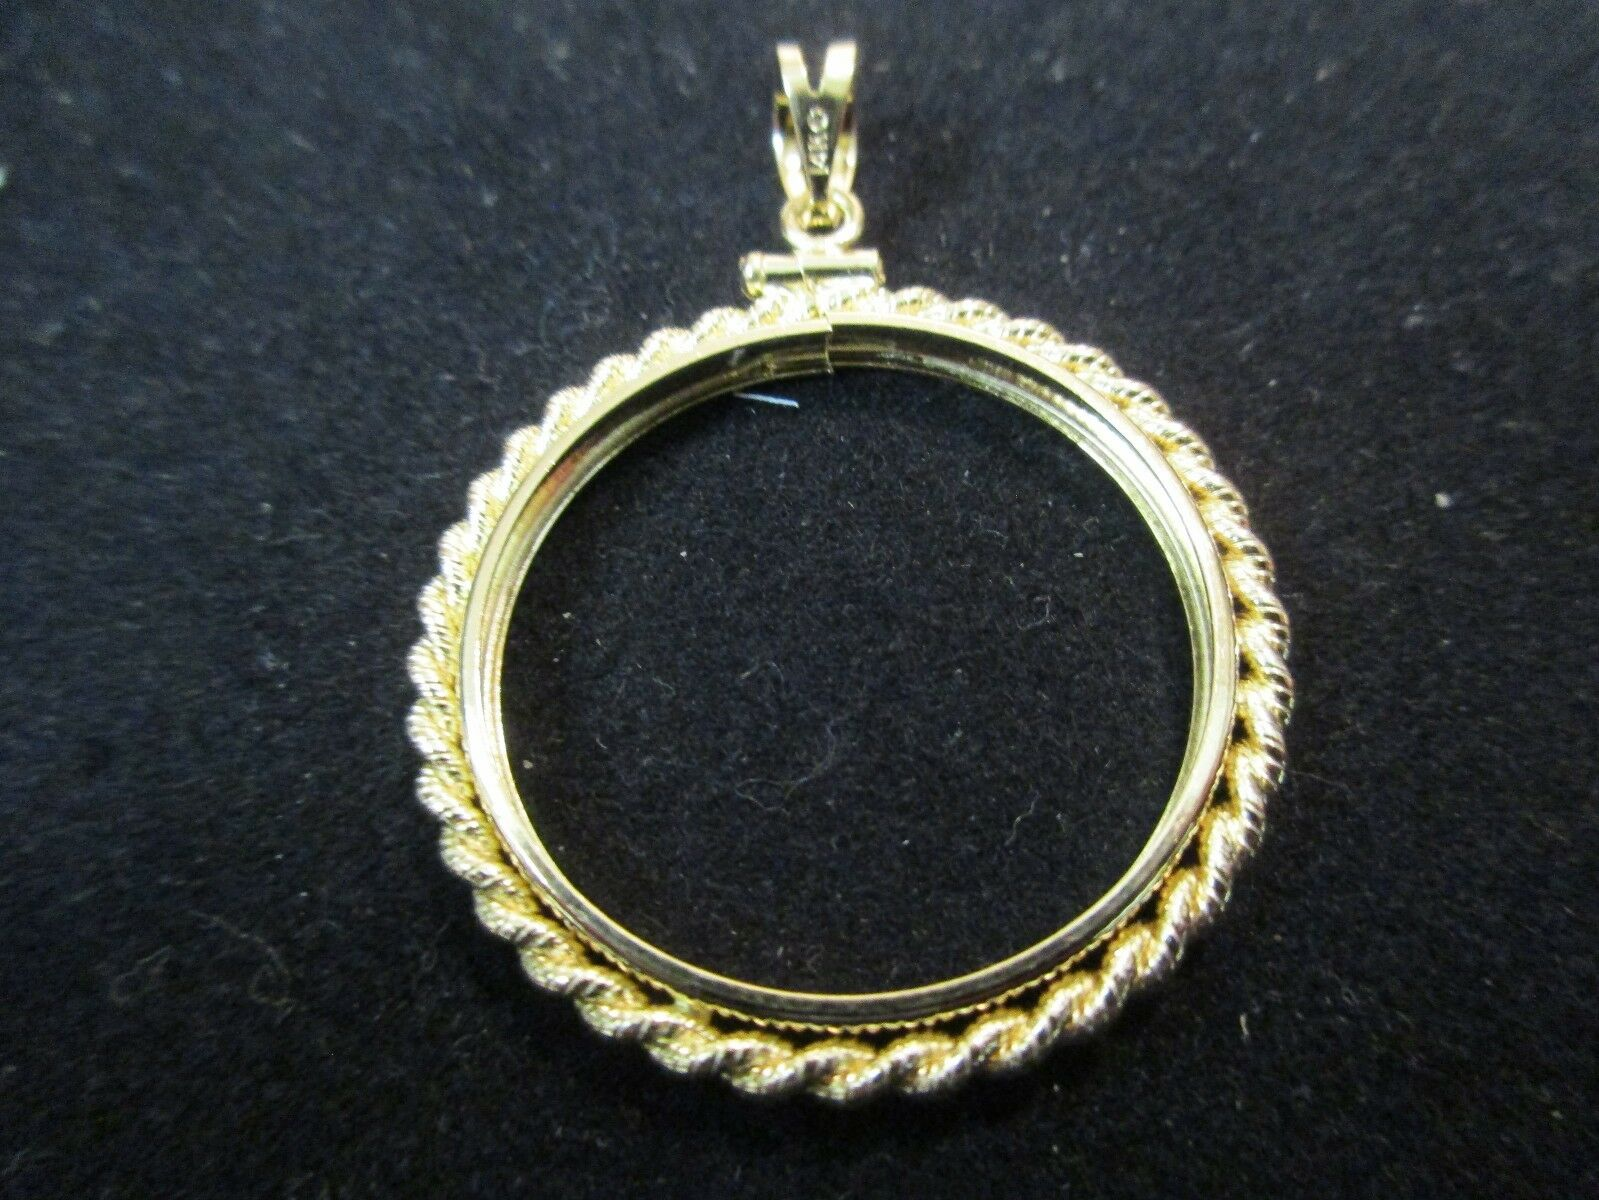 46f144429b056 everyday low prices 1 2oz gold EAGLE SMALL ROPE BEZEL SOLID 14K gold ...